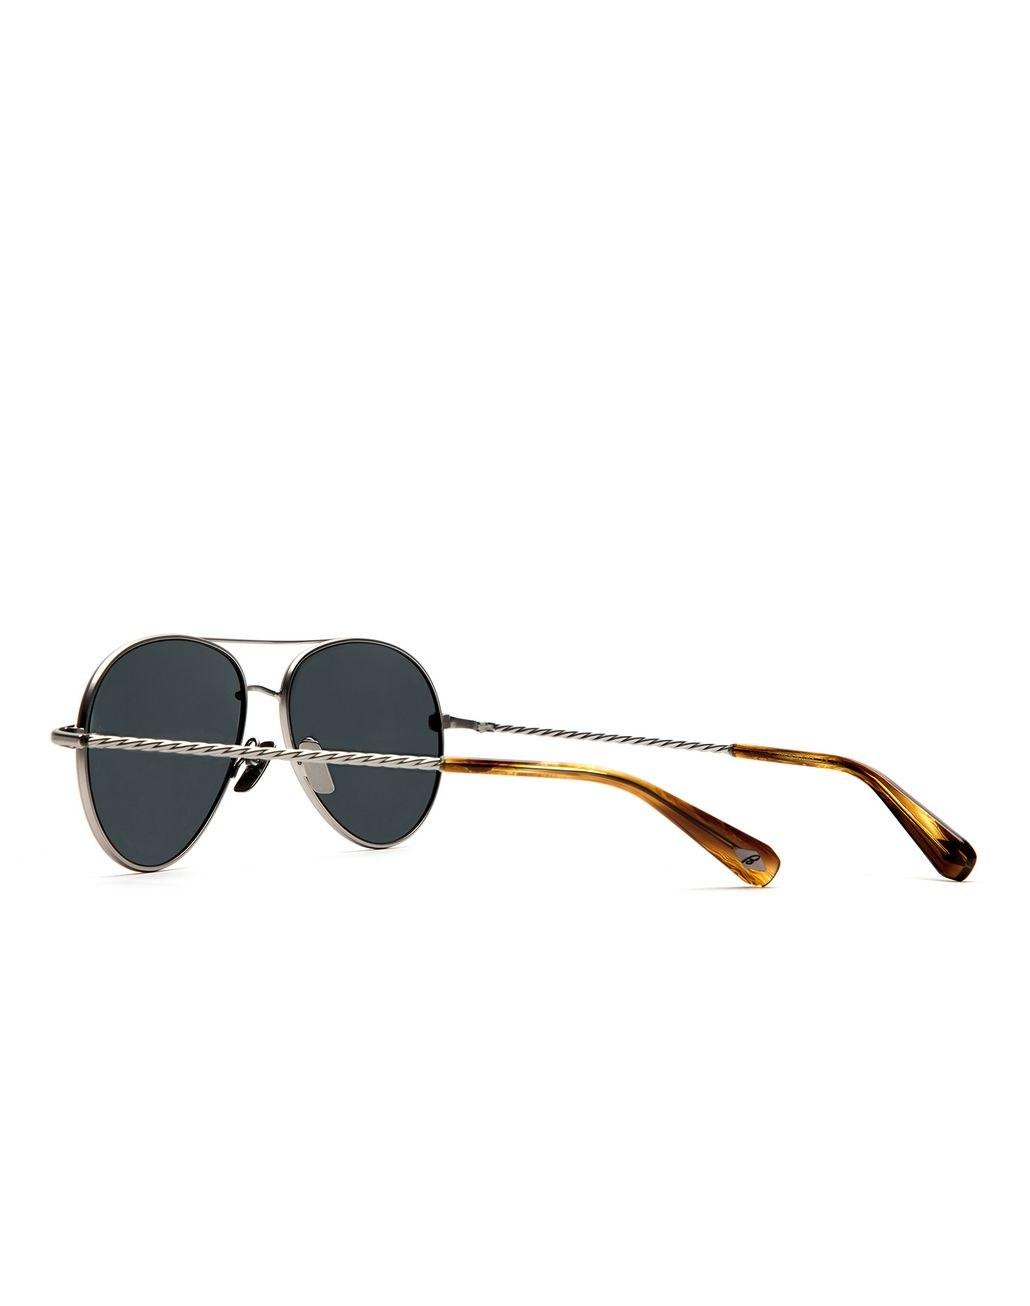 BRIONI Silver Aviator Sunglasses with Gray Lenses Sunglasses Man d